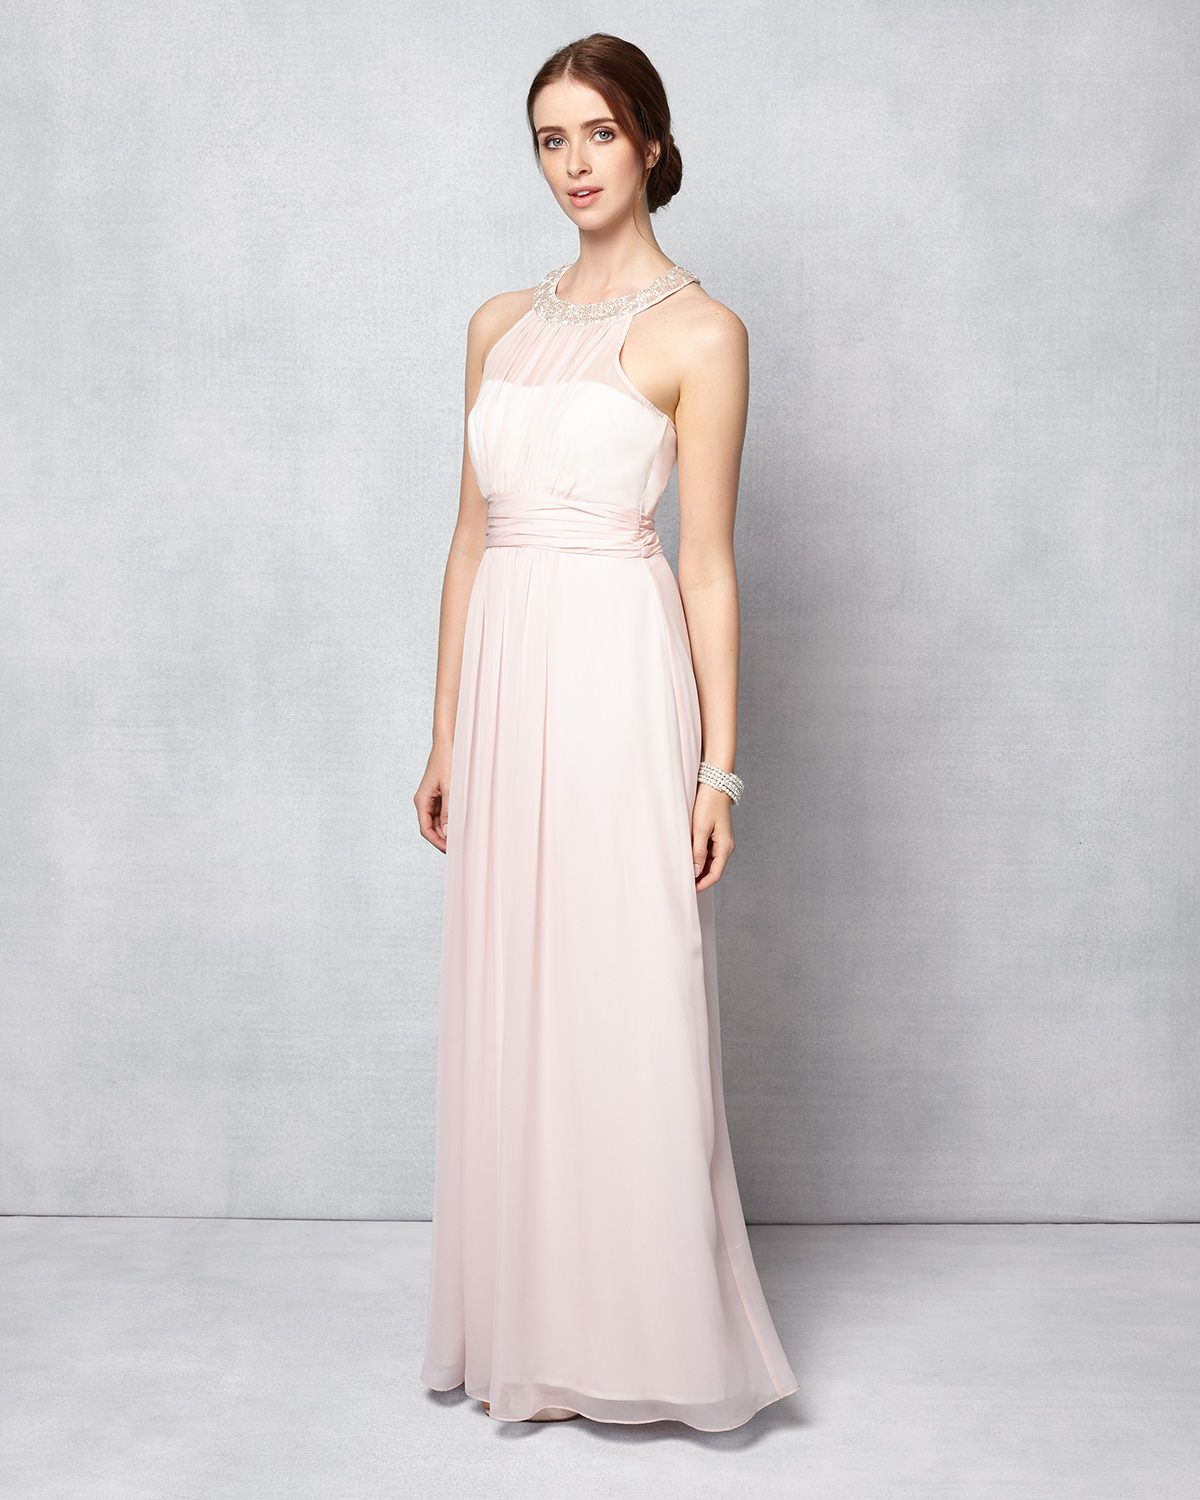 Phase Eight Peyton Beaded Full Length Dress Pink | Brides maid ...